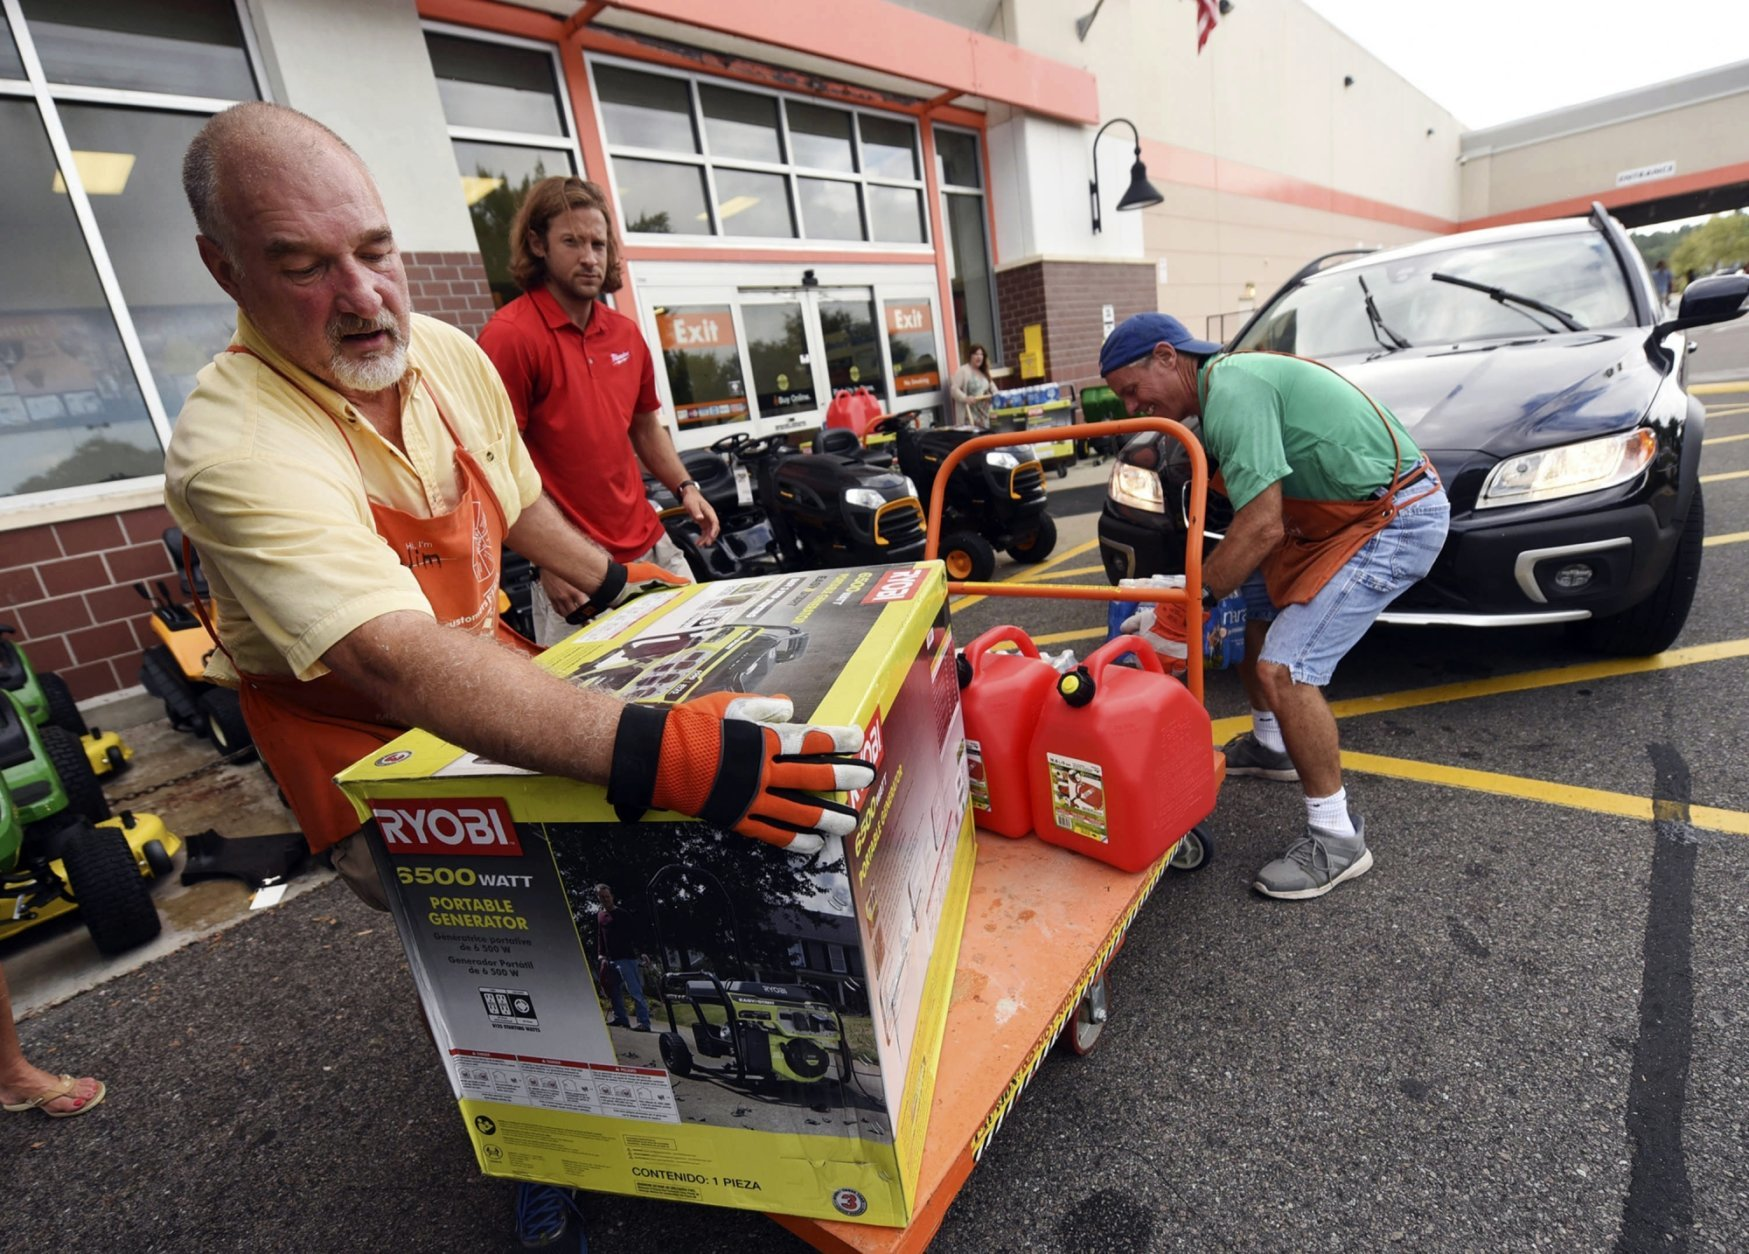 """FILE - In this Monday, Sept. 10, 2018 file photo, Jim Craig, David Burke and Chris Rayner load generators as people buy supplies at The Home Depot in Wilmington, N.C. """"It's a year-round thing for us,"""" said Margaret Smith, spokeswoman for Atlanta-based Home Depot. """"When it's hurricane season, we are operating 24 hours a day."""" (Ken Blevins/The Star-News via AP, File)"""